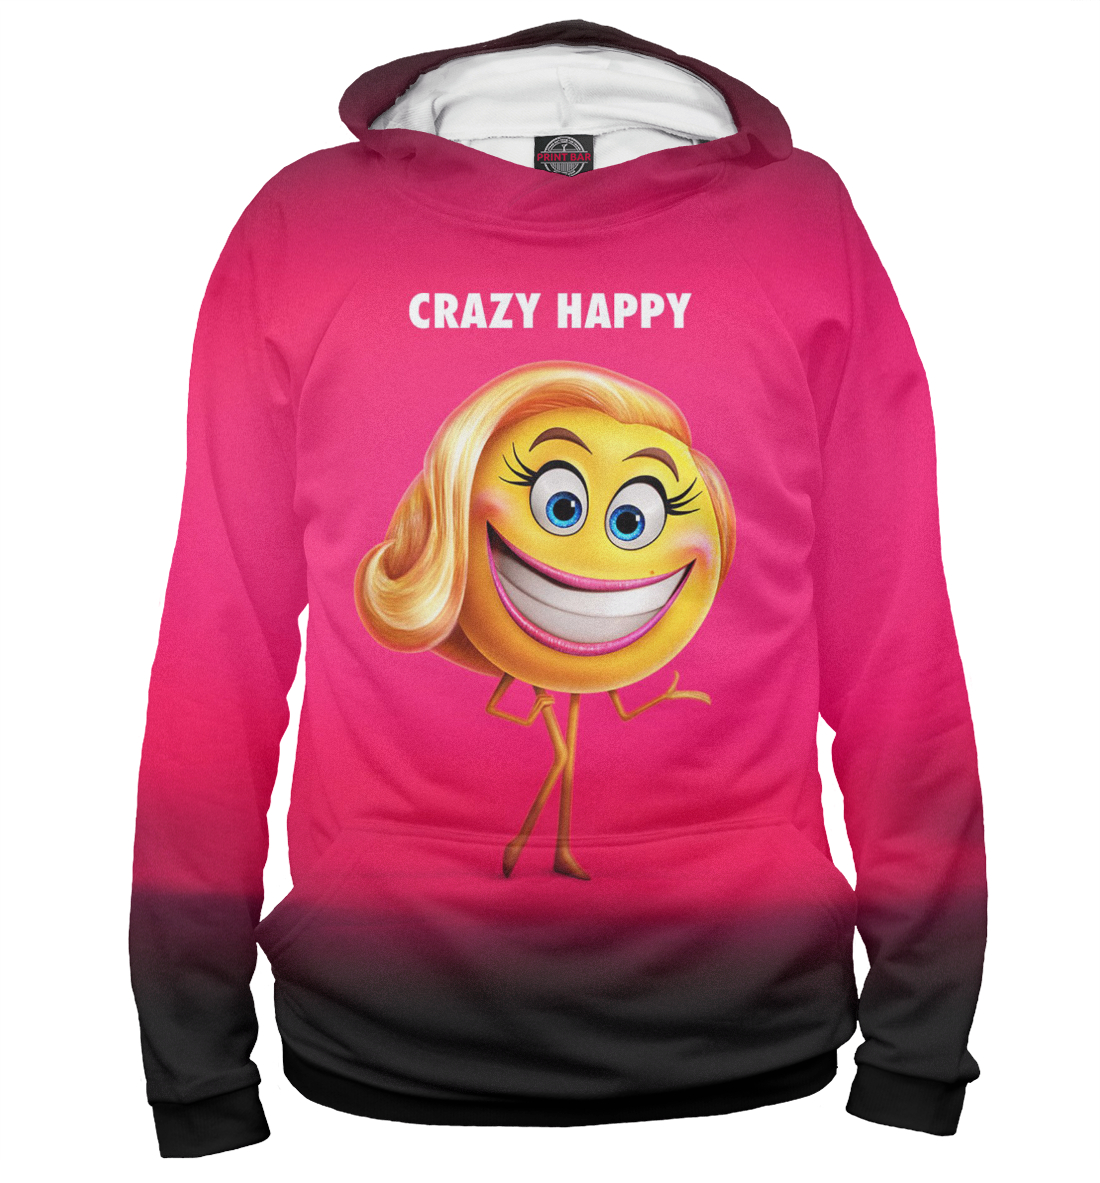 Купить Crazy Happy, Printbar, Худи, EMJ-645138-hud-1